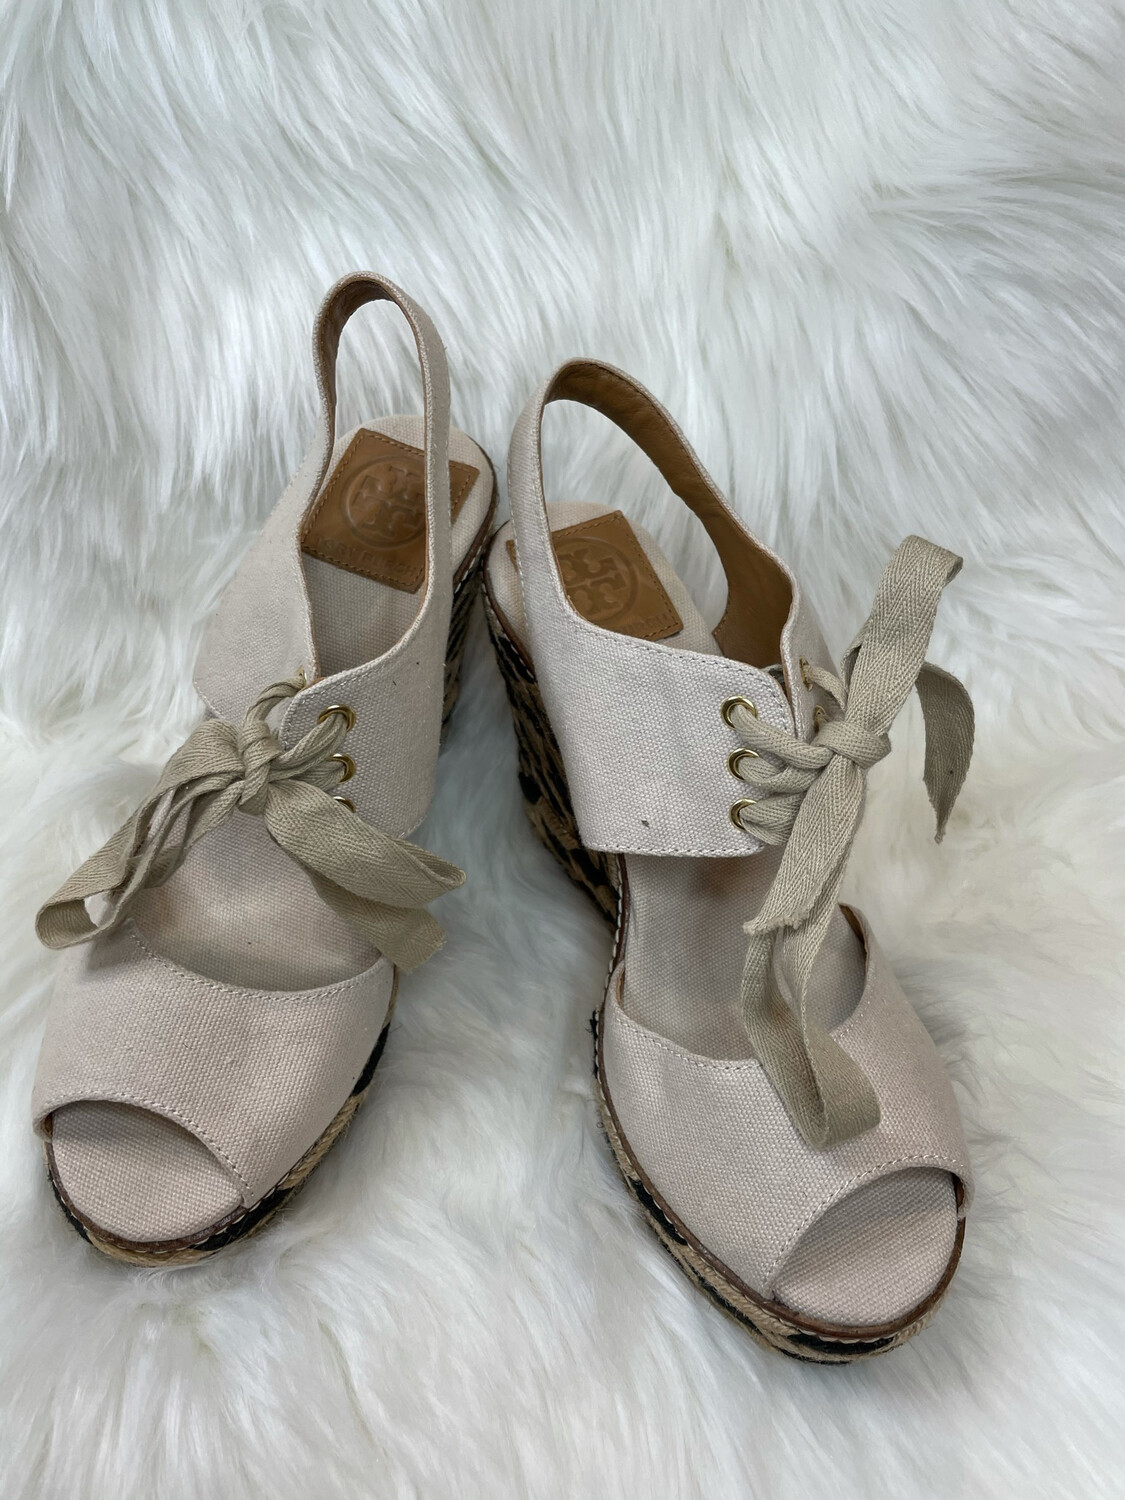 Tory Burch Cream & Black Lace Up Wedges - Size 8